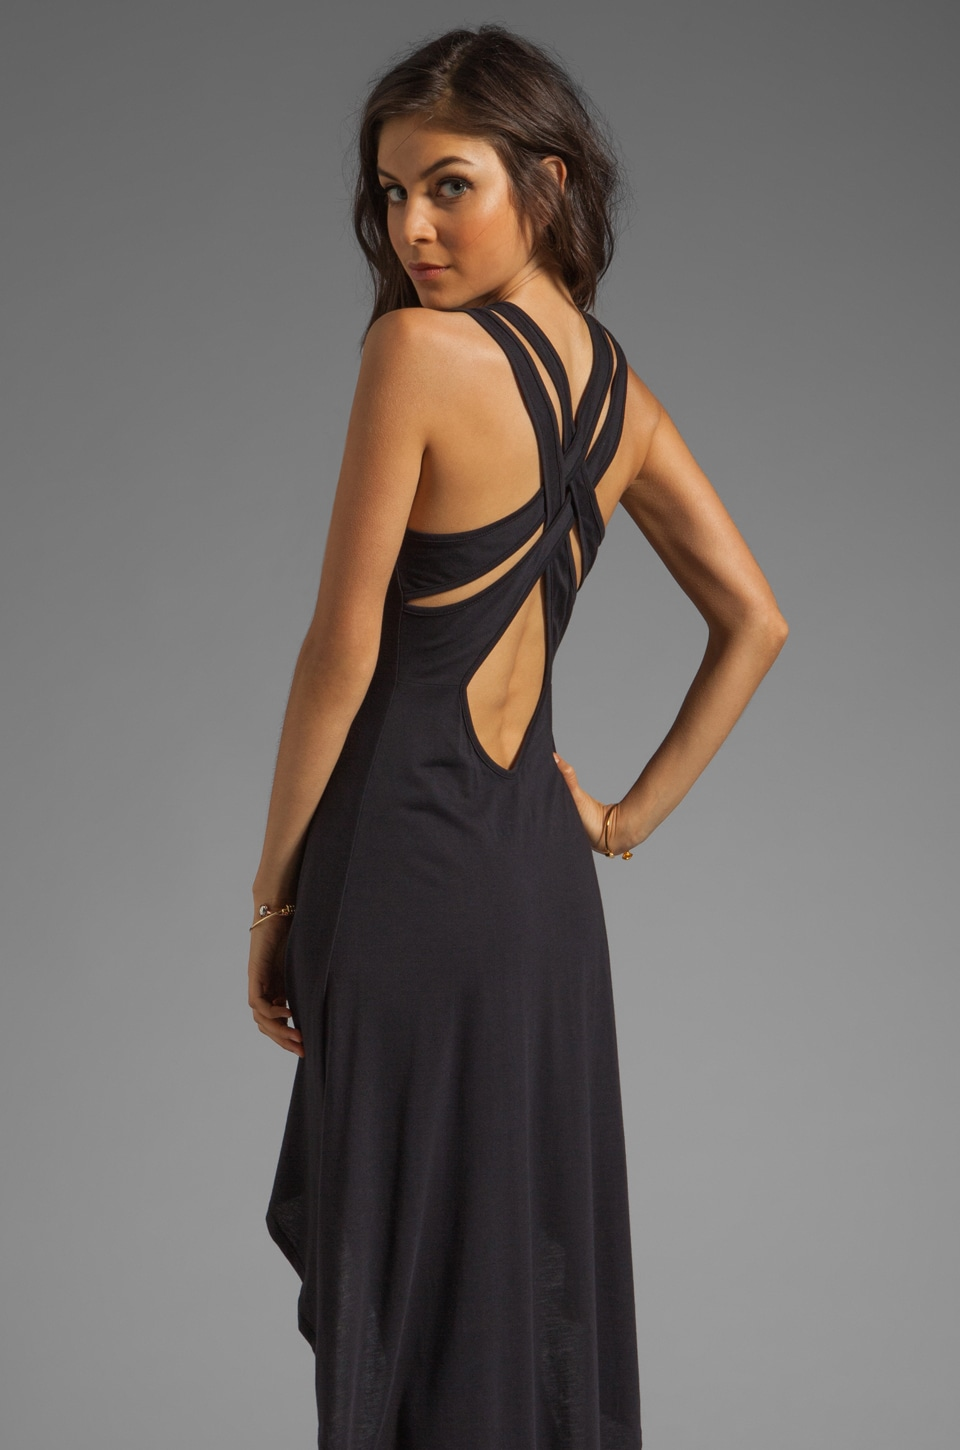 Blue Life Criss Cross Back High Low Dress in Black